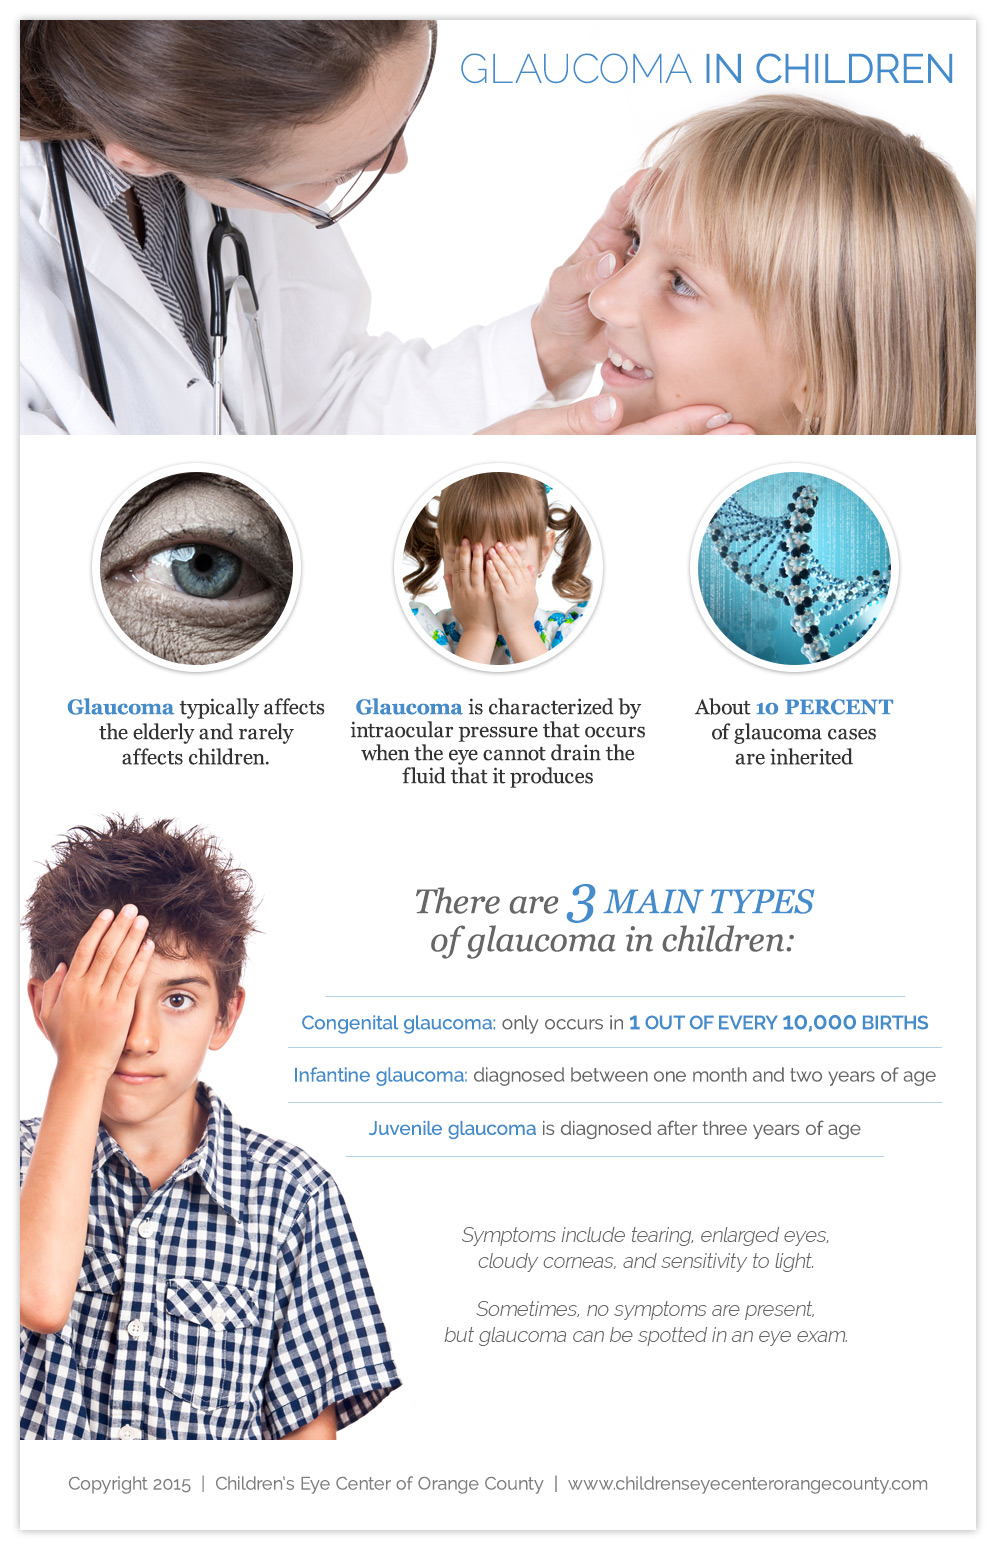 Glaucoma-in-Children-by-Childrens-Eye-Center-of-OC